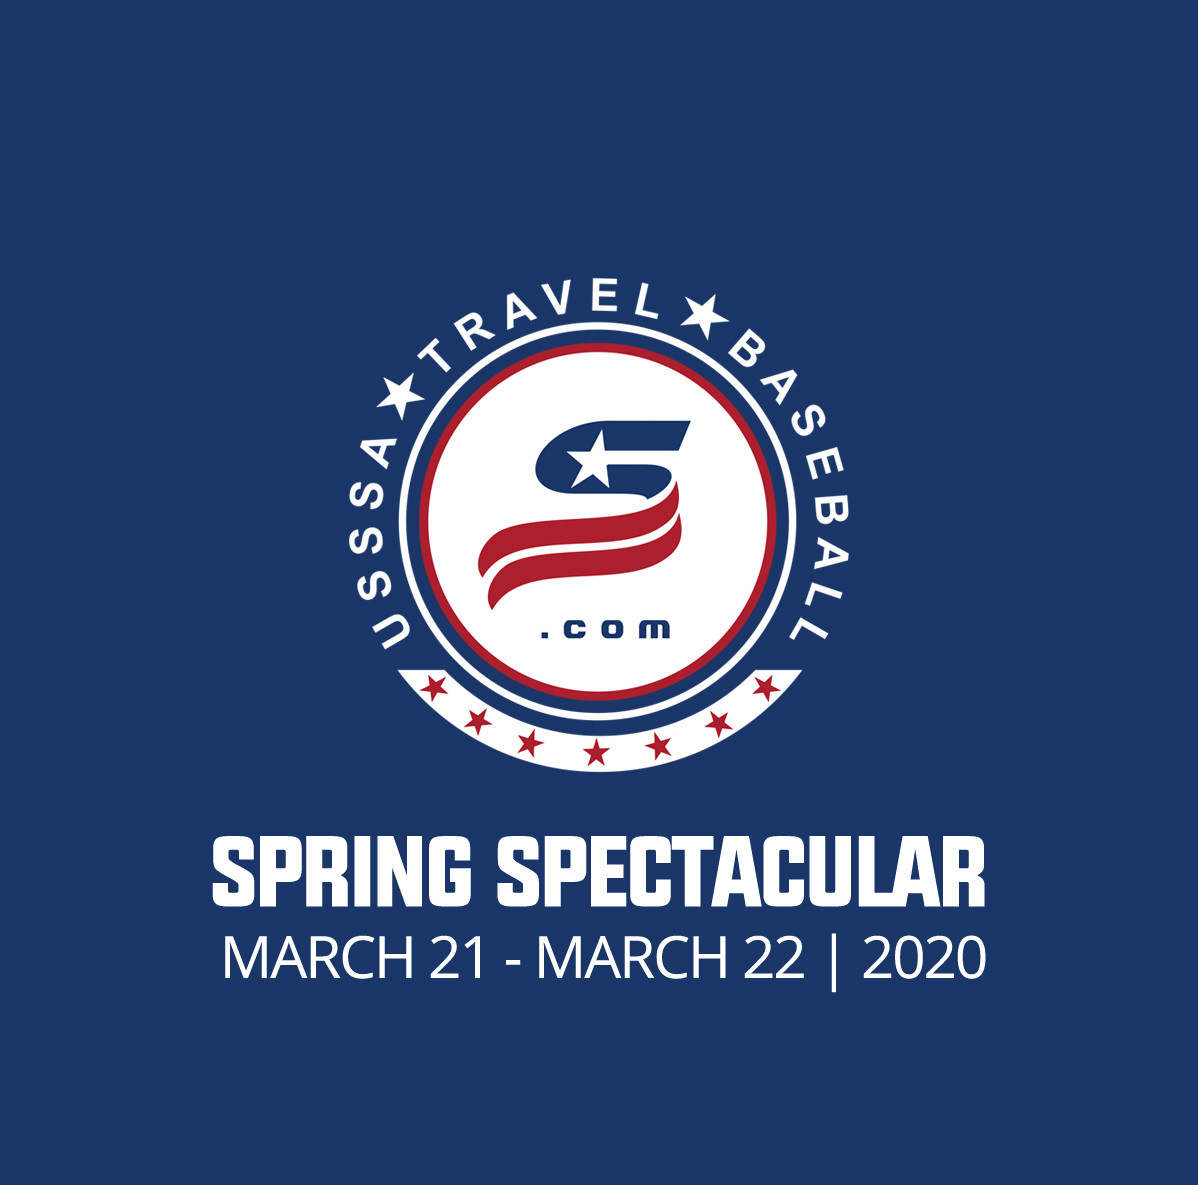 UPSTATE - SPRING 2020 SPECTACULAR